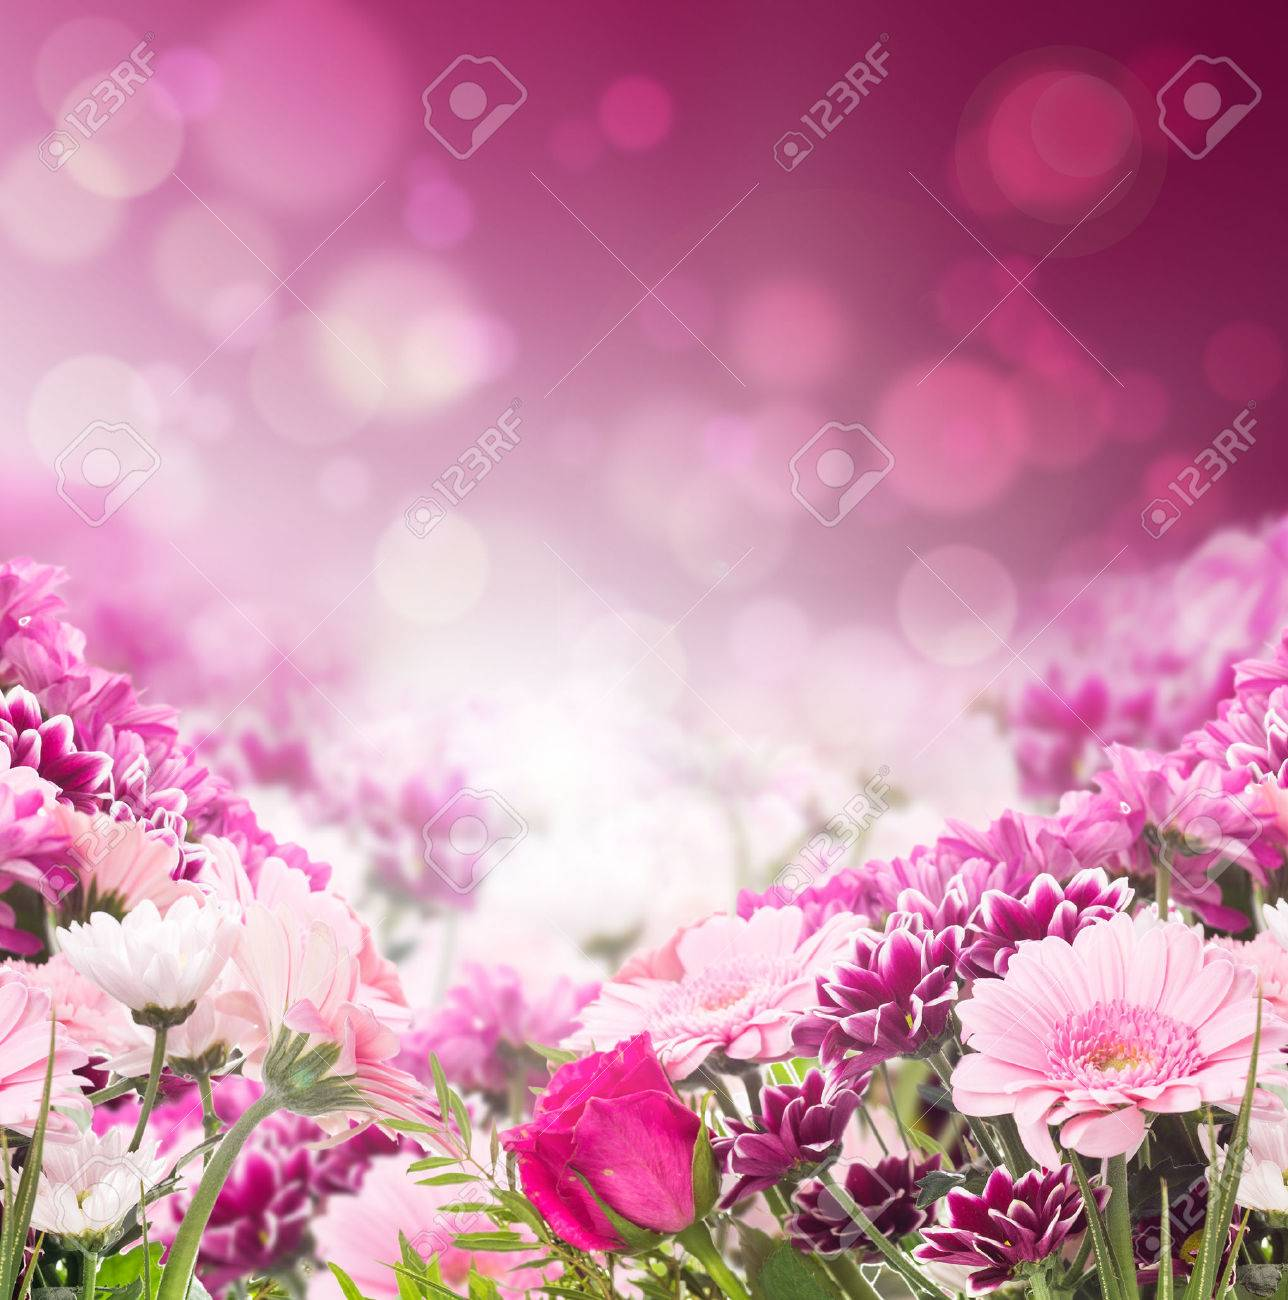 flower border stock photos royalty free flower border images and